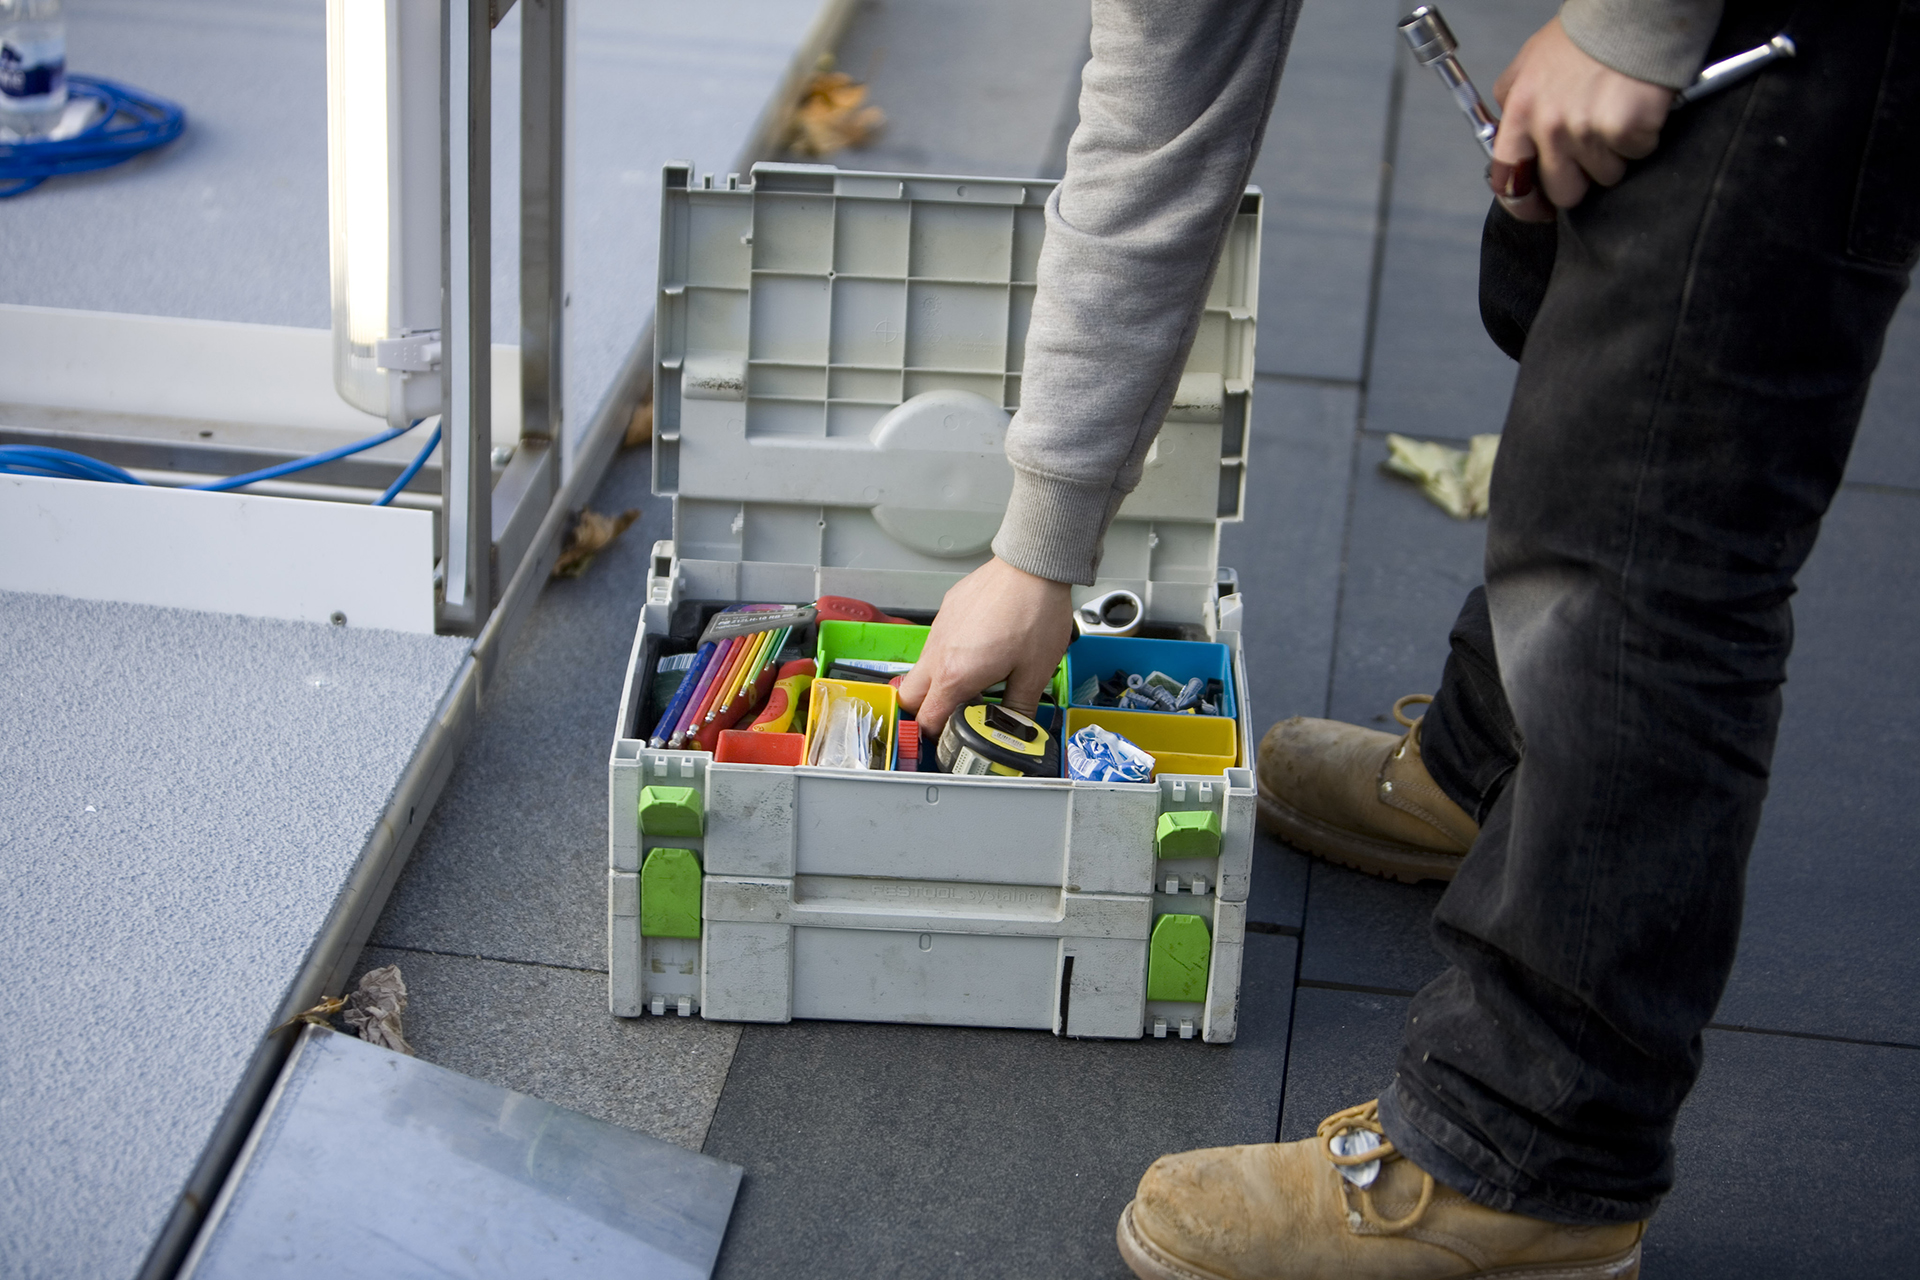 standard8 installation team member on site with tool box